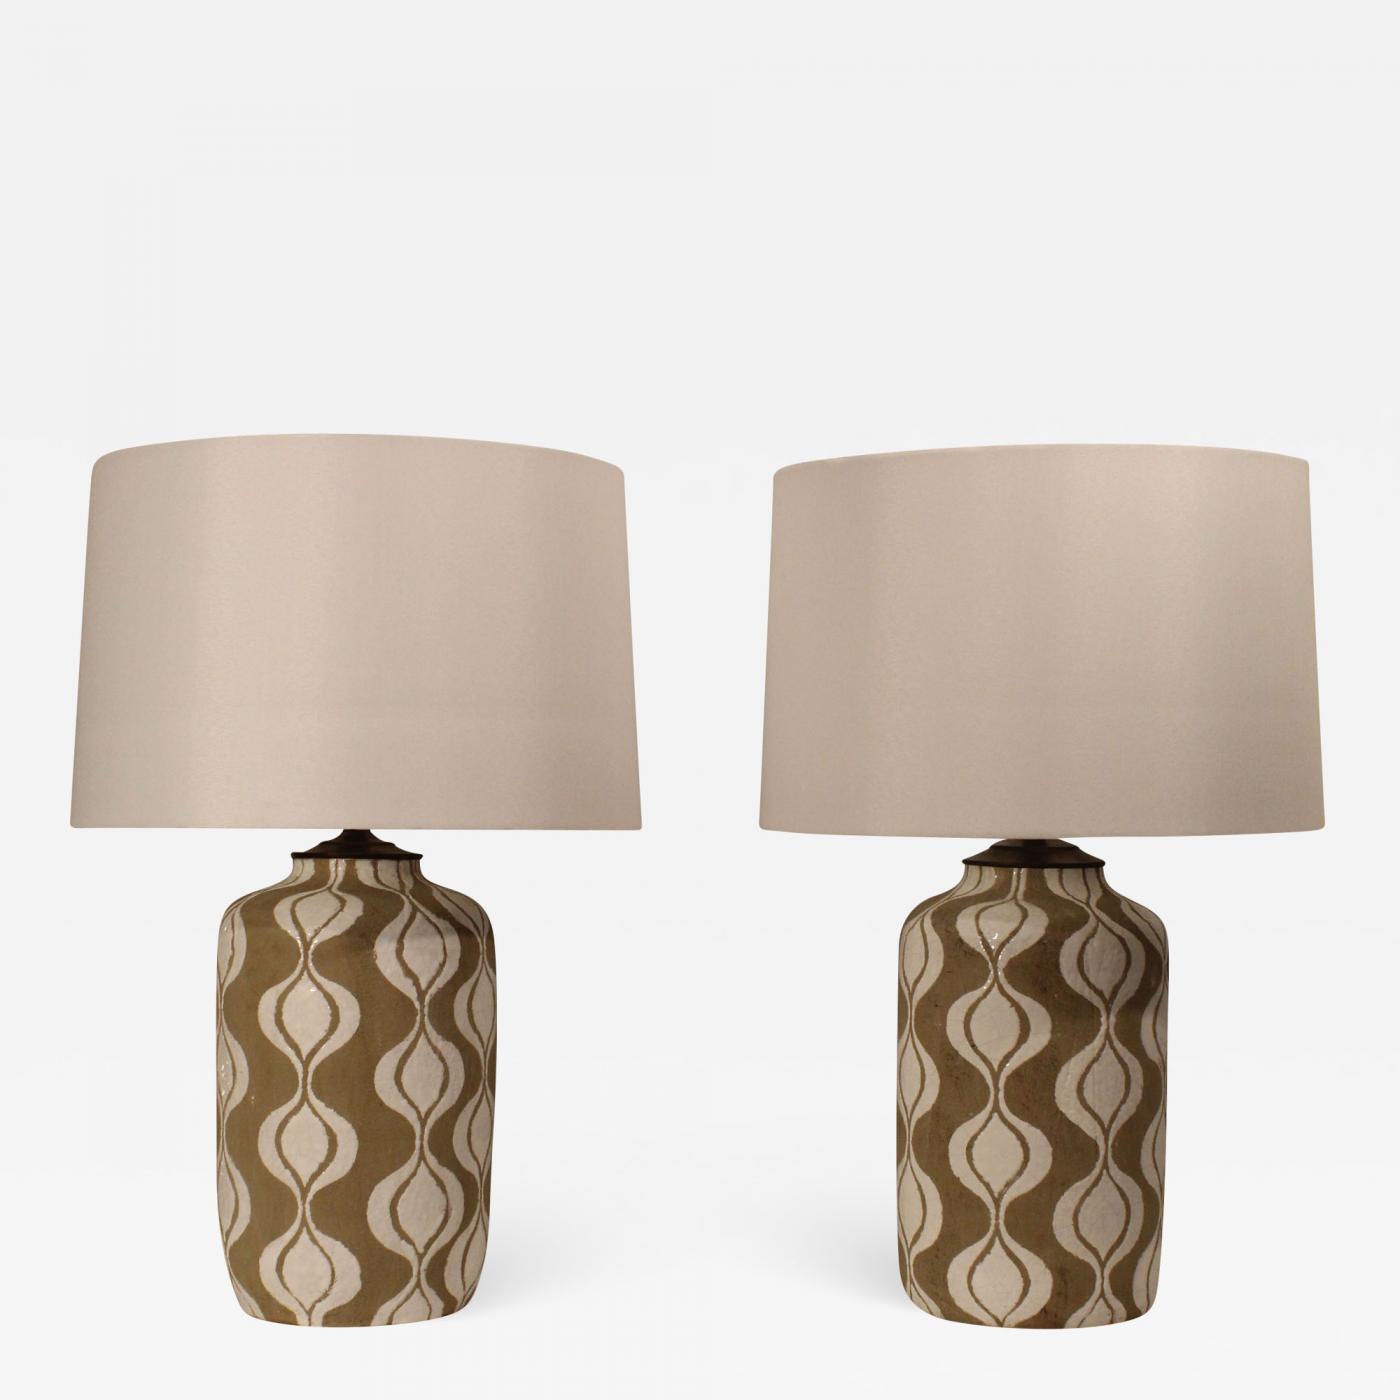 Image of: A Pair Of Embossed Mid Century Modern Table Lamps